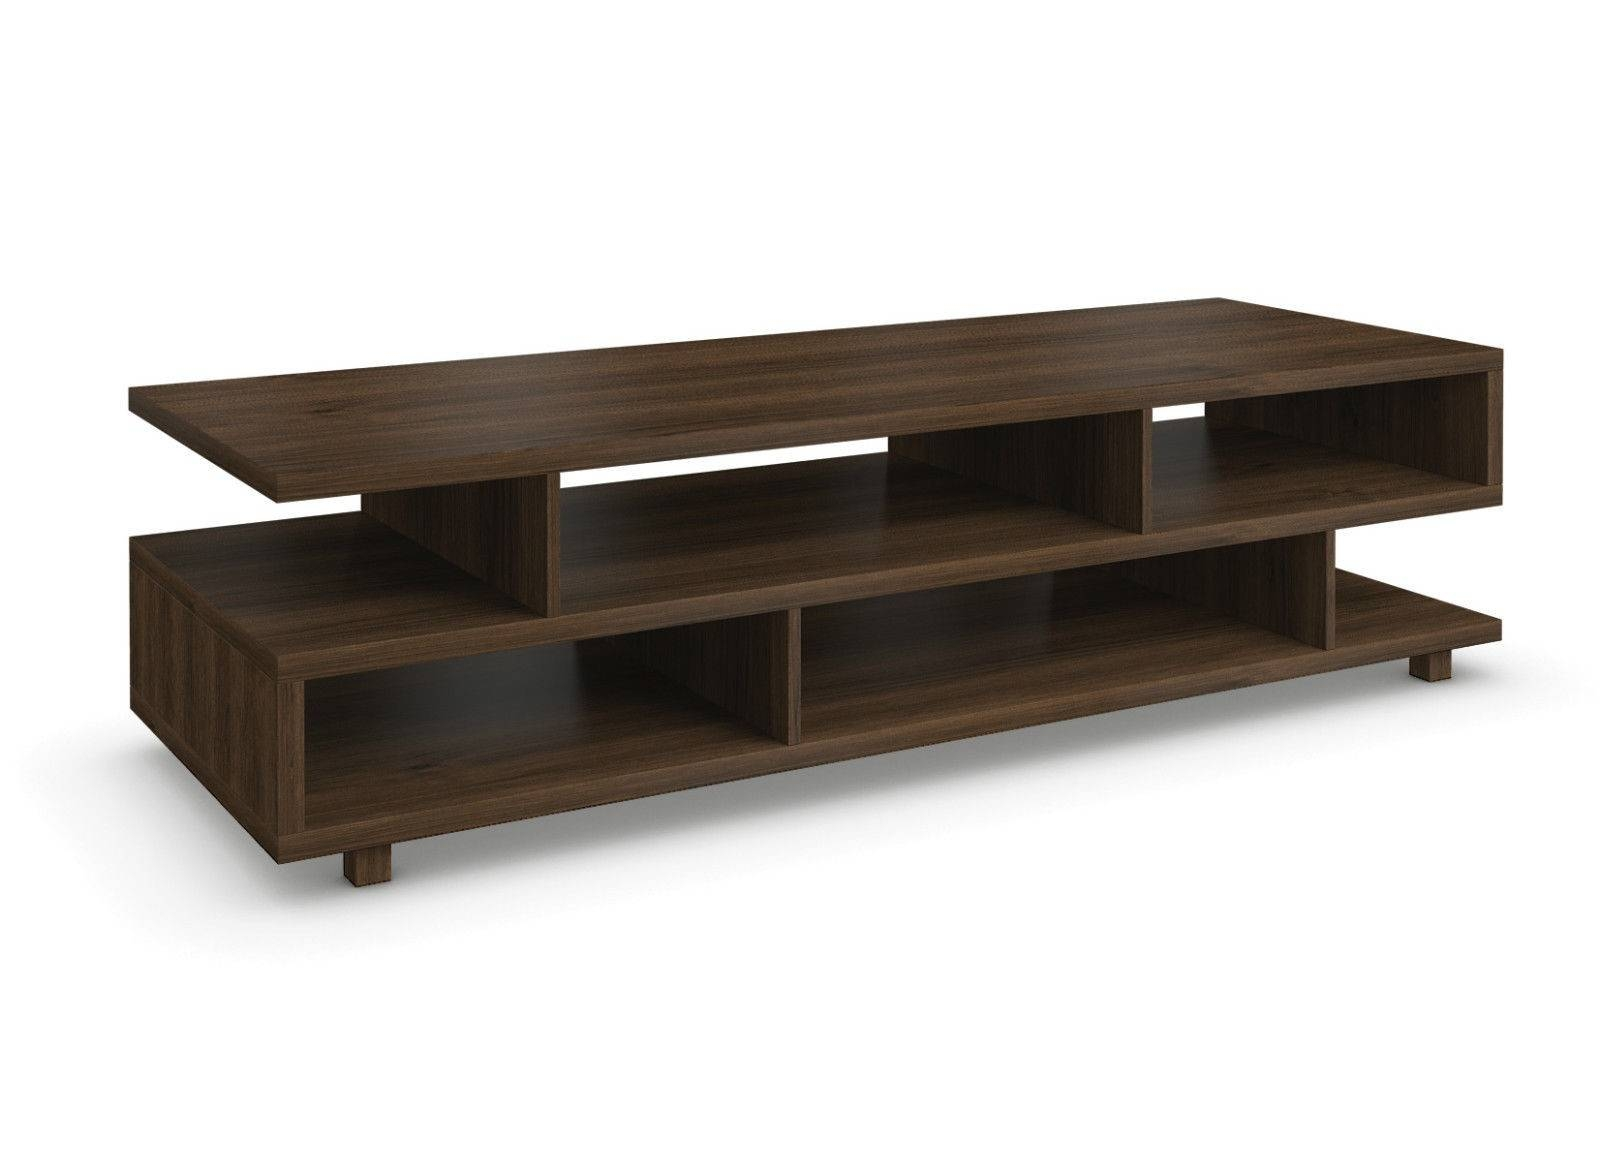 Tv Table Lcd Led Rack Walnut Finish - Lalbay with Tv Table (Image 12 of 15)